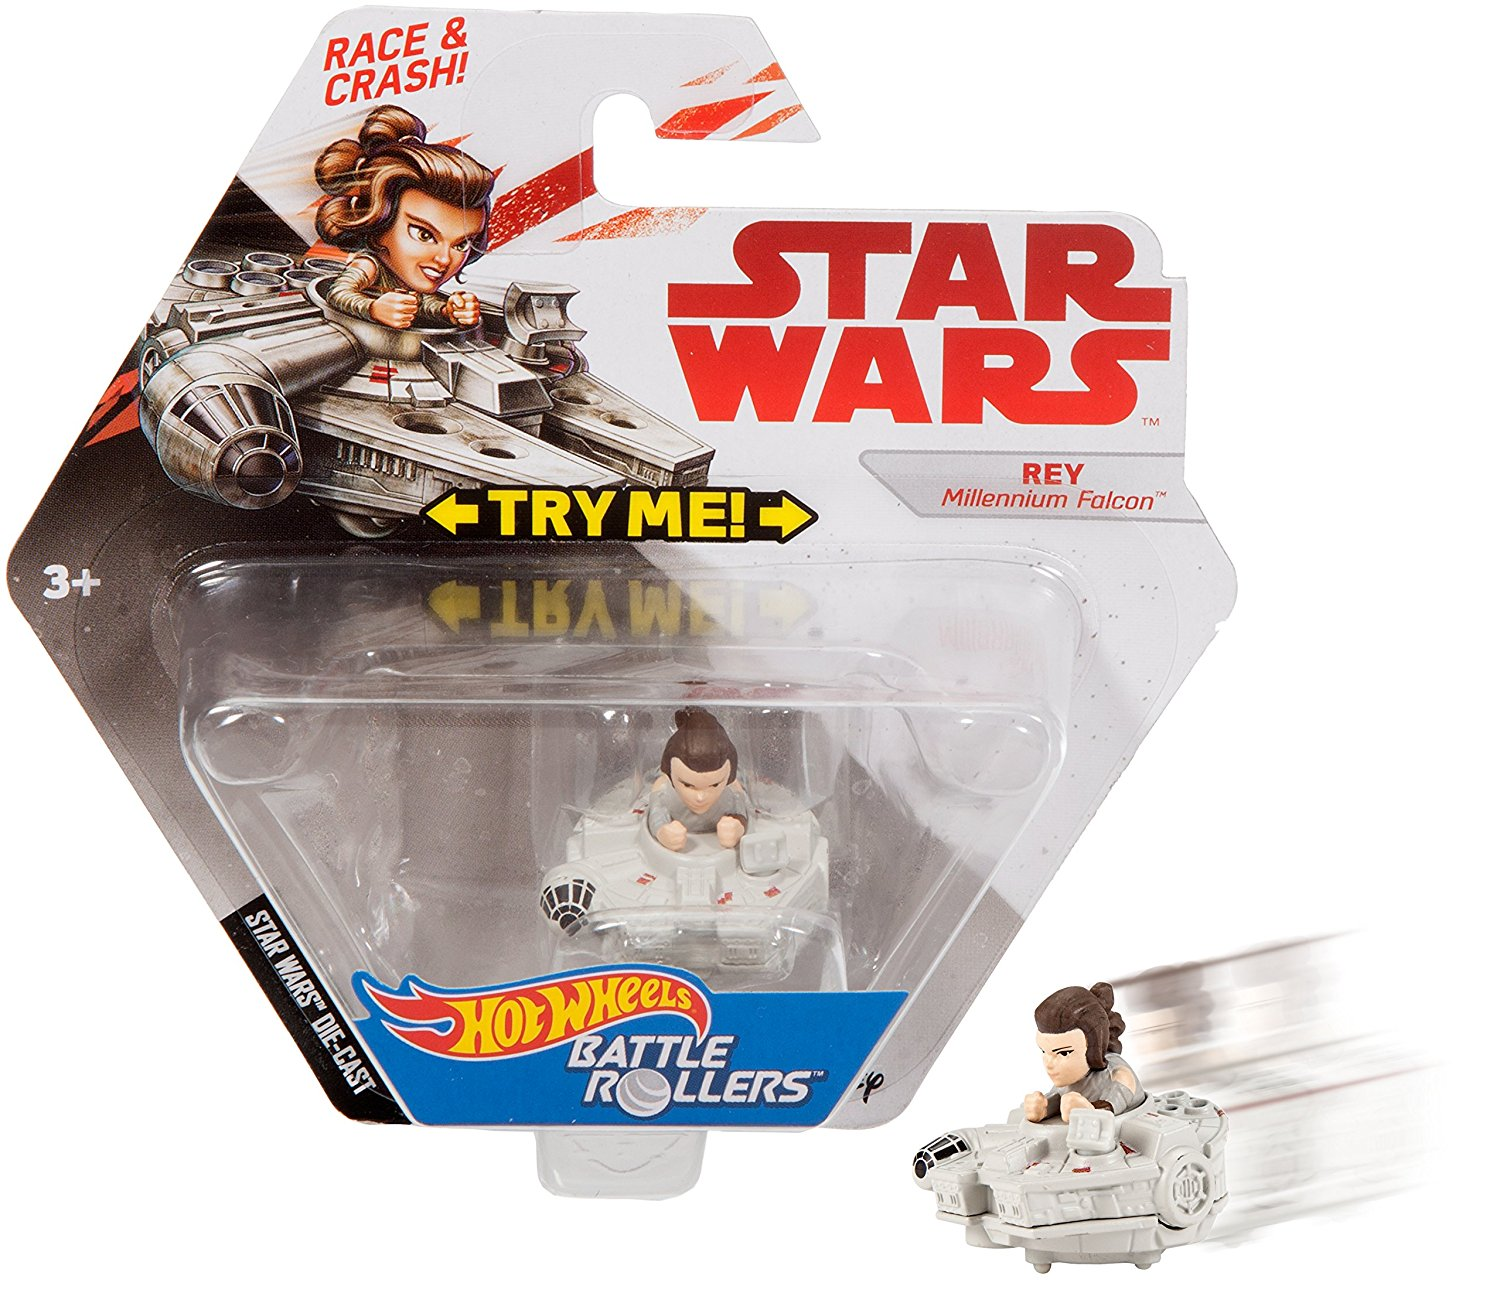 TLJ Rey Battle Rollers Vehicle Toy 3